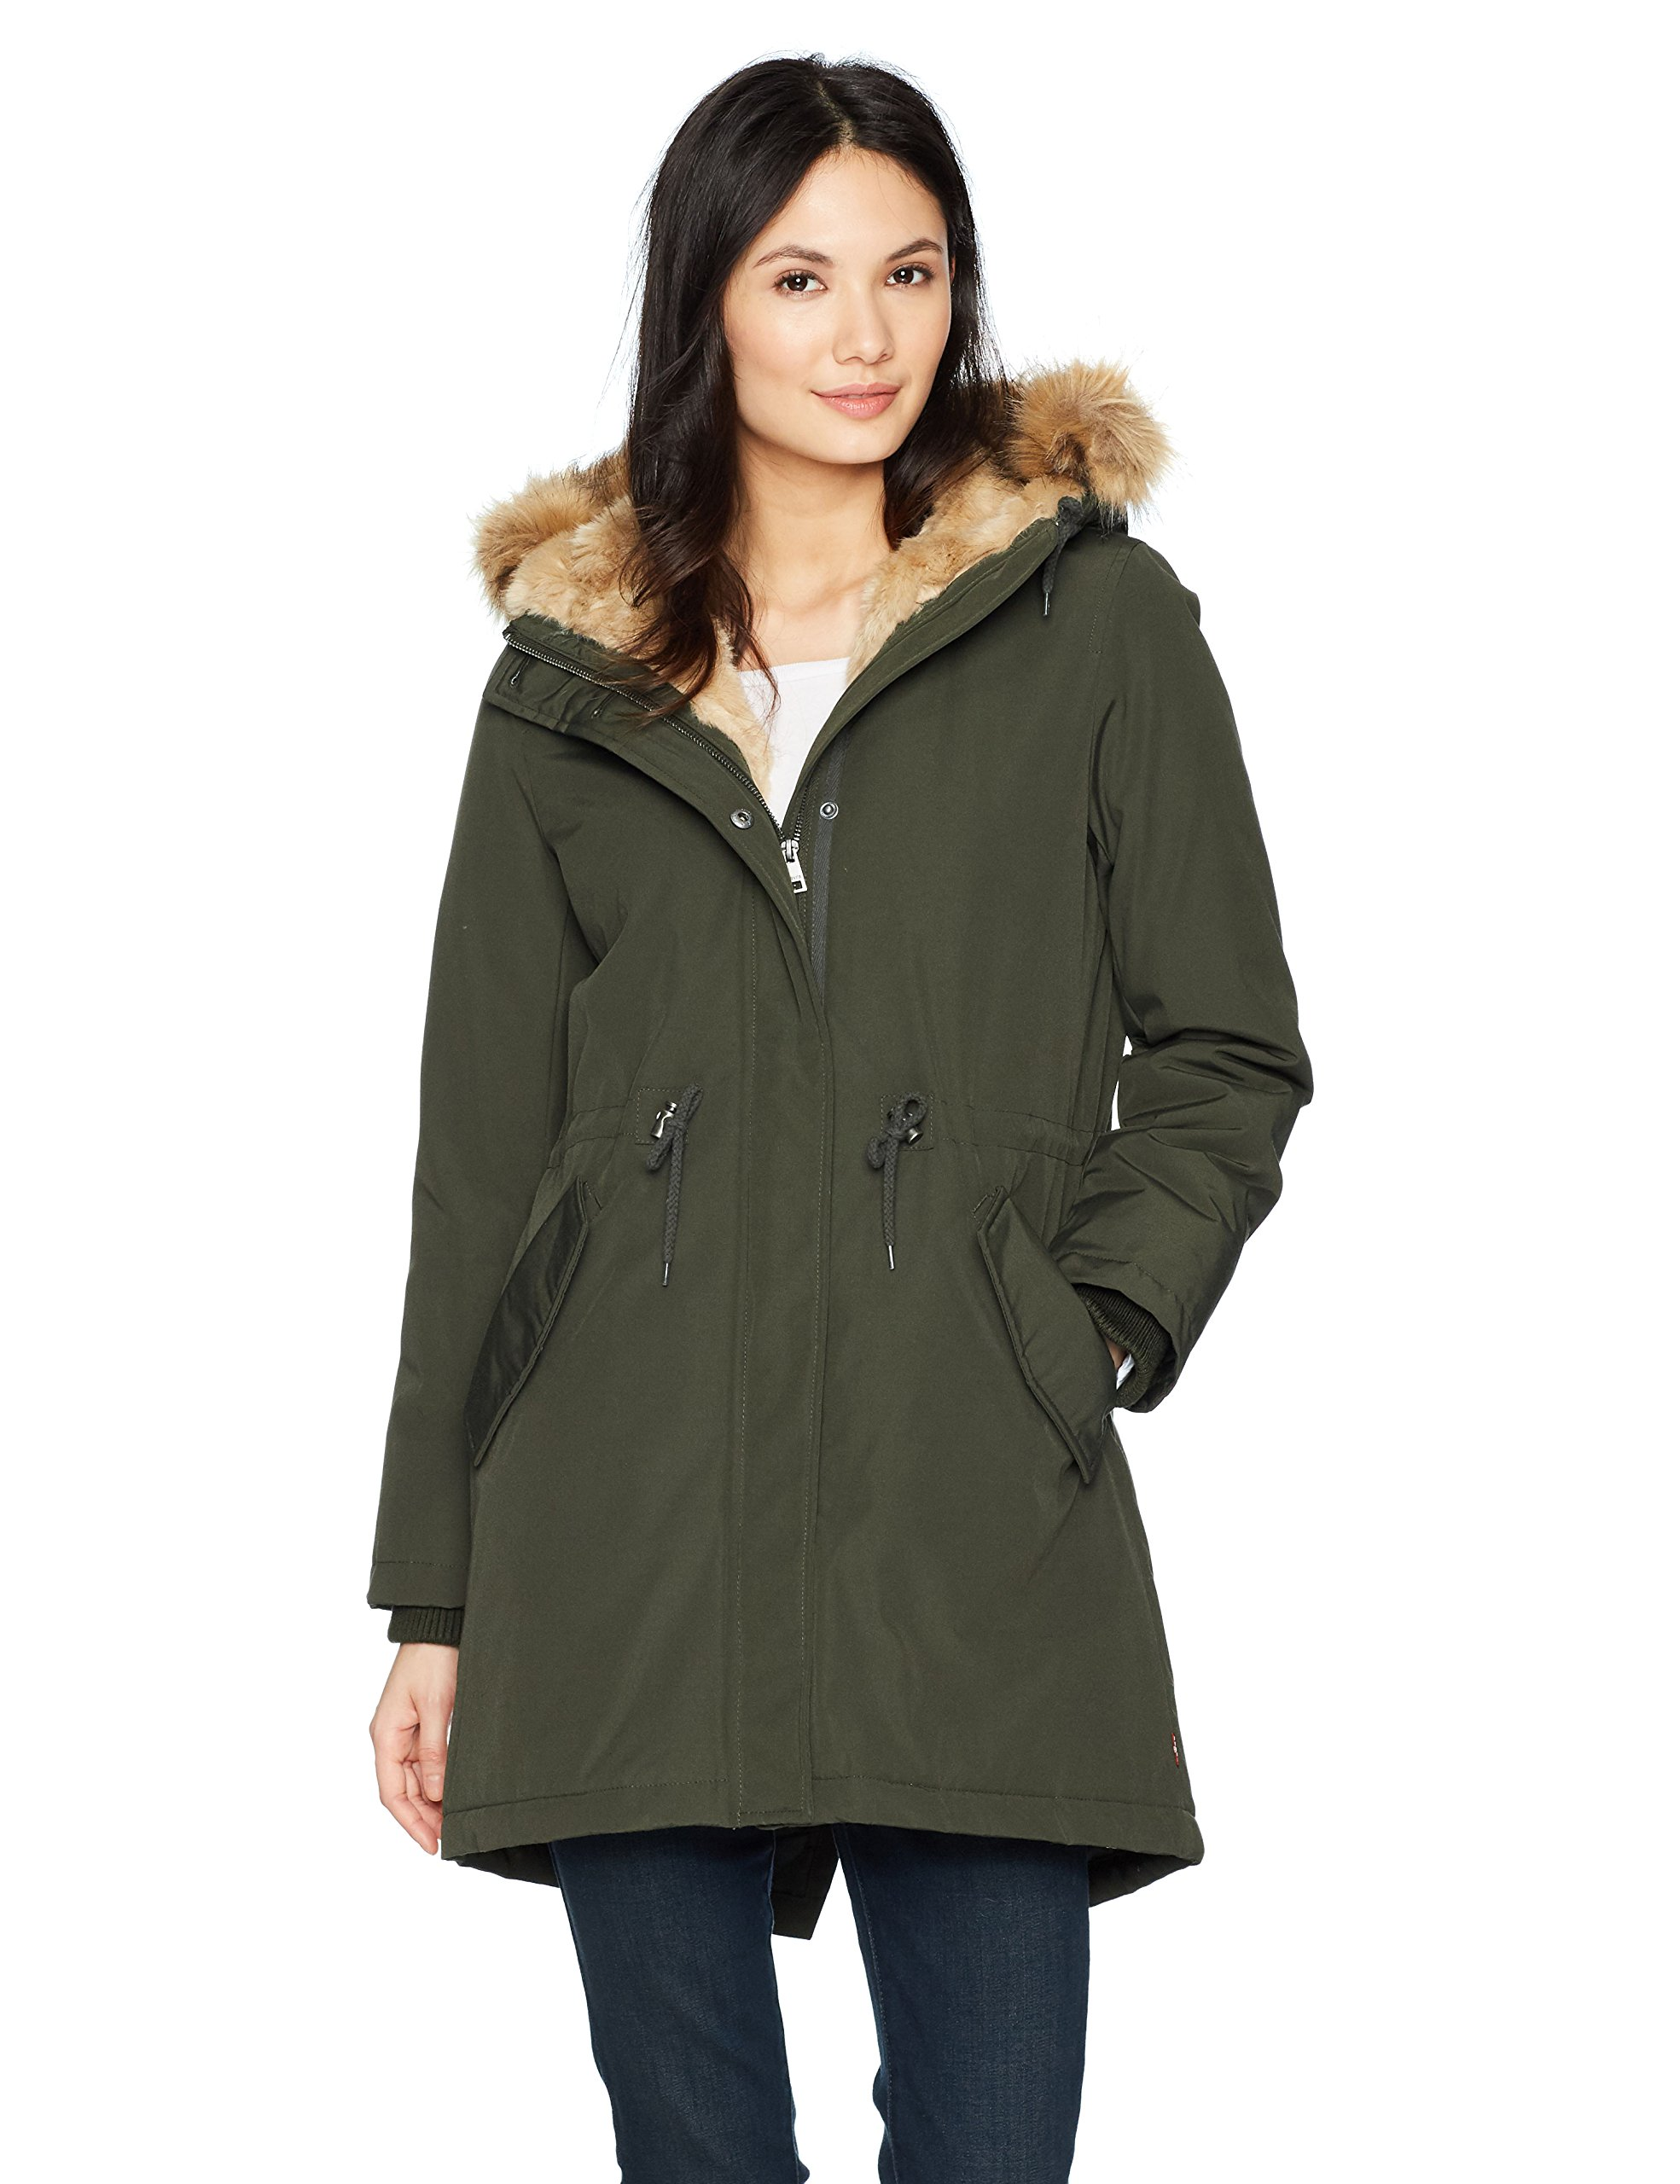 Levi's Women's Faux Fur Lined Hooded Parka Jacket, Olive, Medium